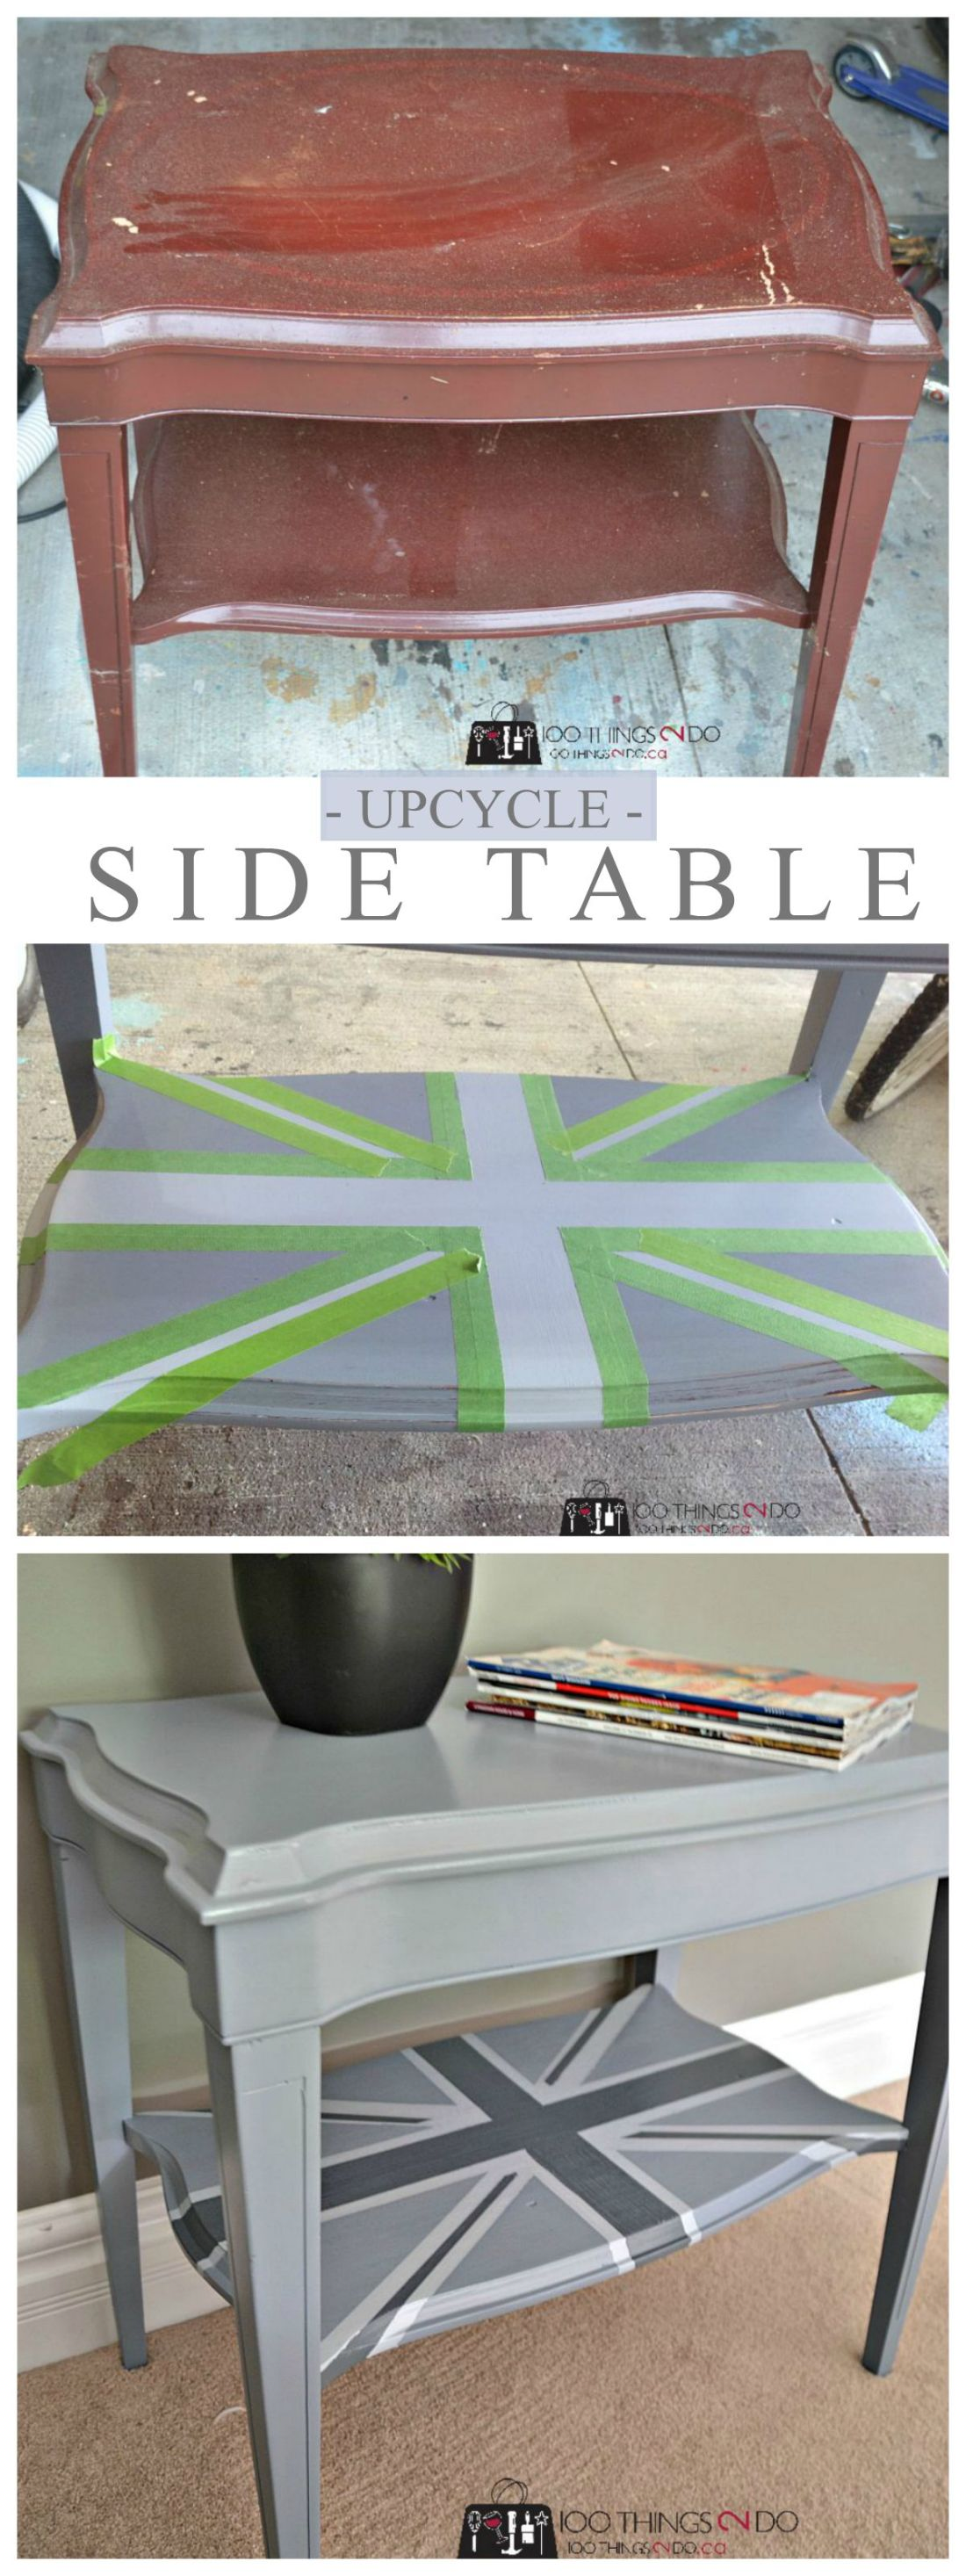 Furniture makeover - side table. From garbage find to Union Jack accent table.